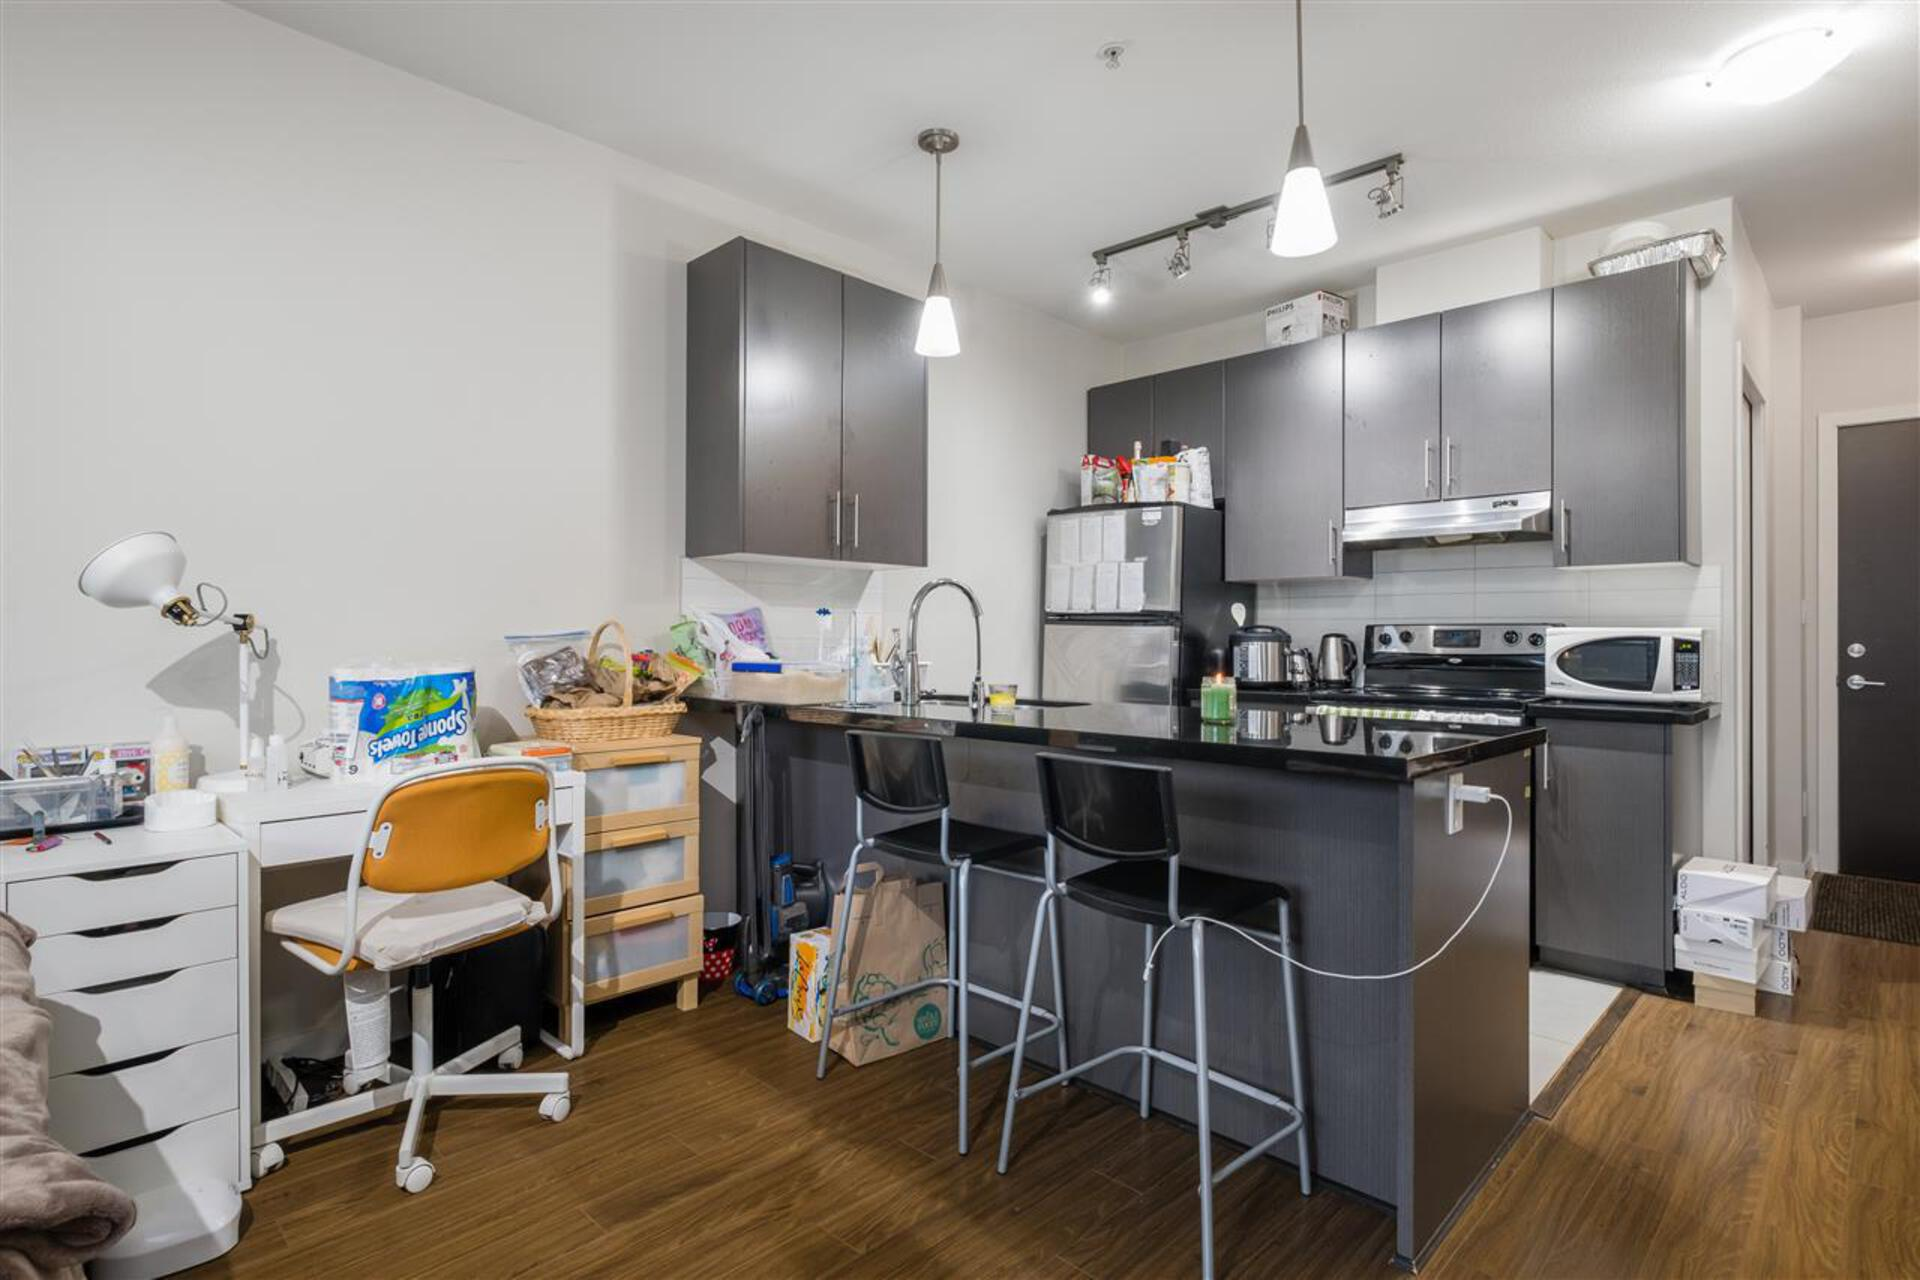 5211-grimmer-street-metrotown-burnaby-south-13 at 208 - 5211 Grimmer Street, Metrotown, Burnaby South